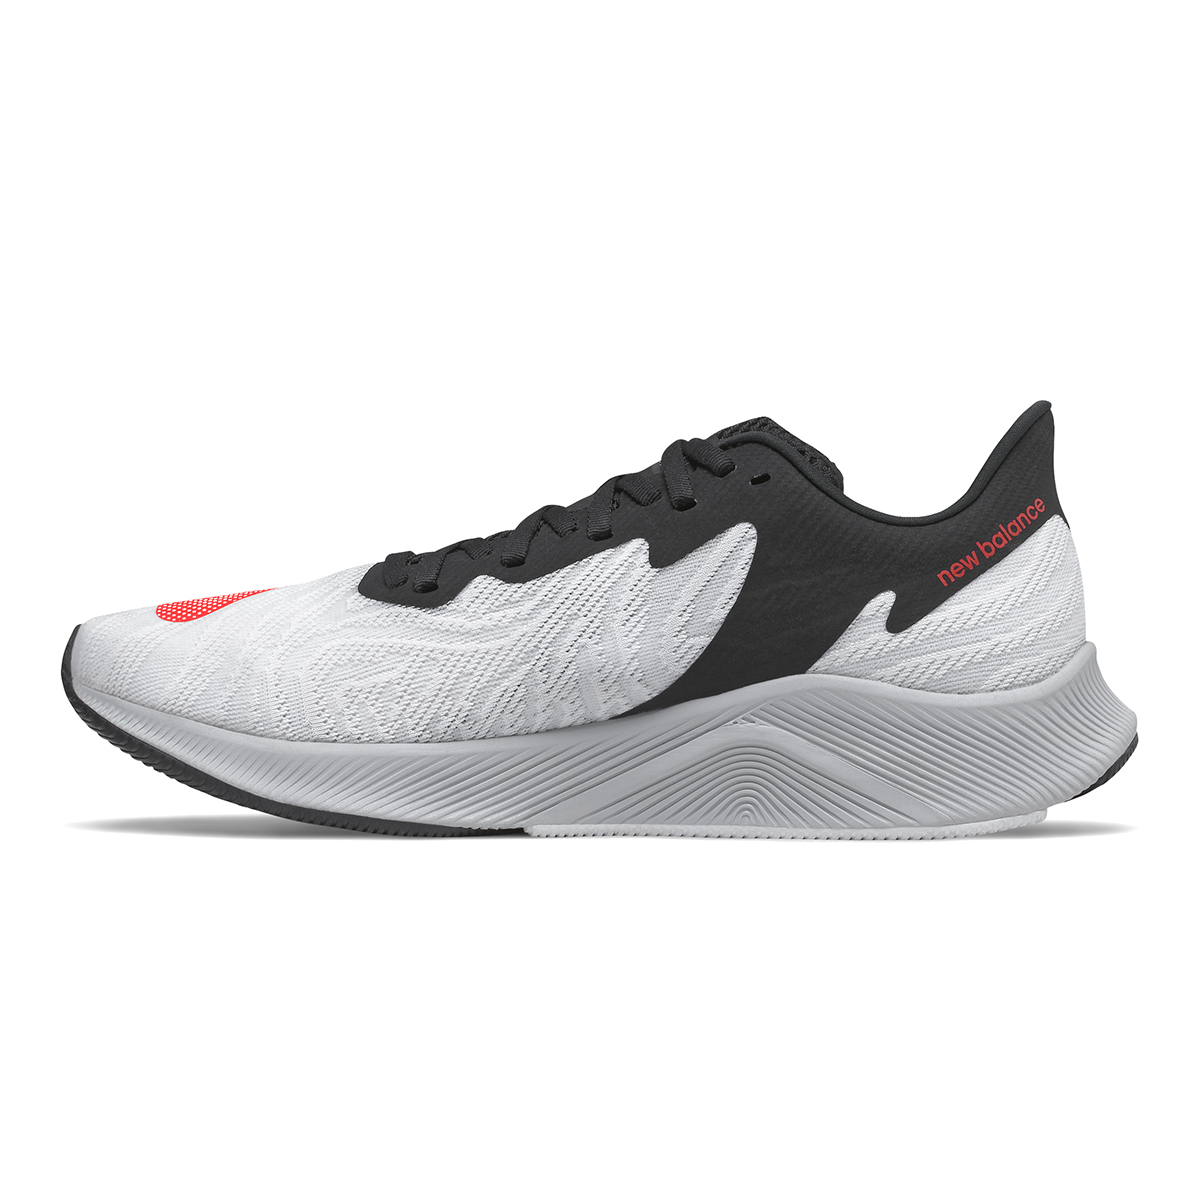 Men's New Balance FuelCell Prism Running Shoe - Color: White - Size: 7 - Width: Wide, White, large, image 2